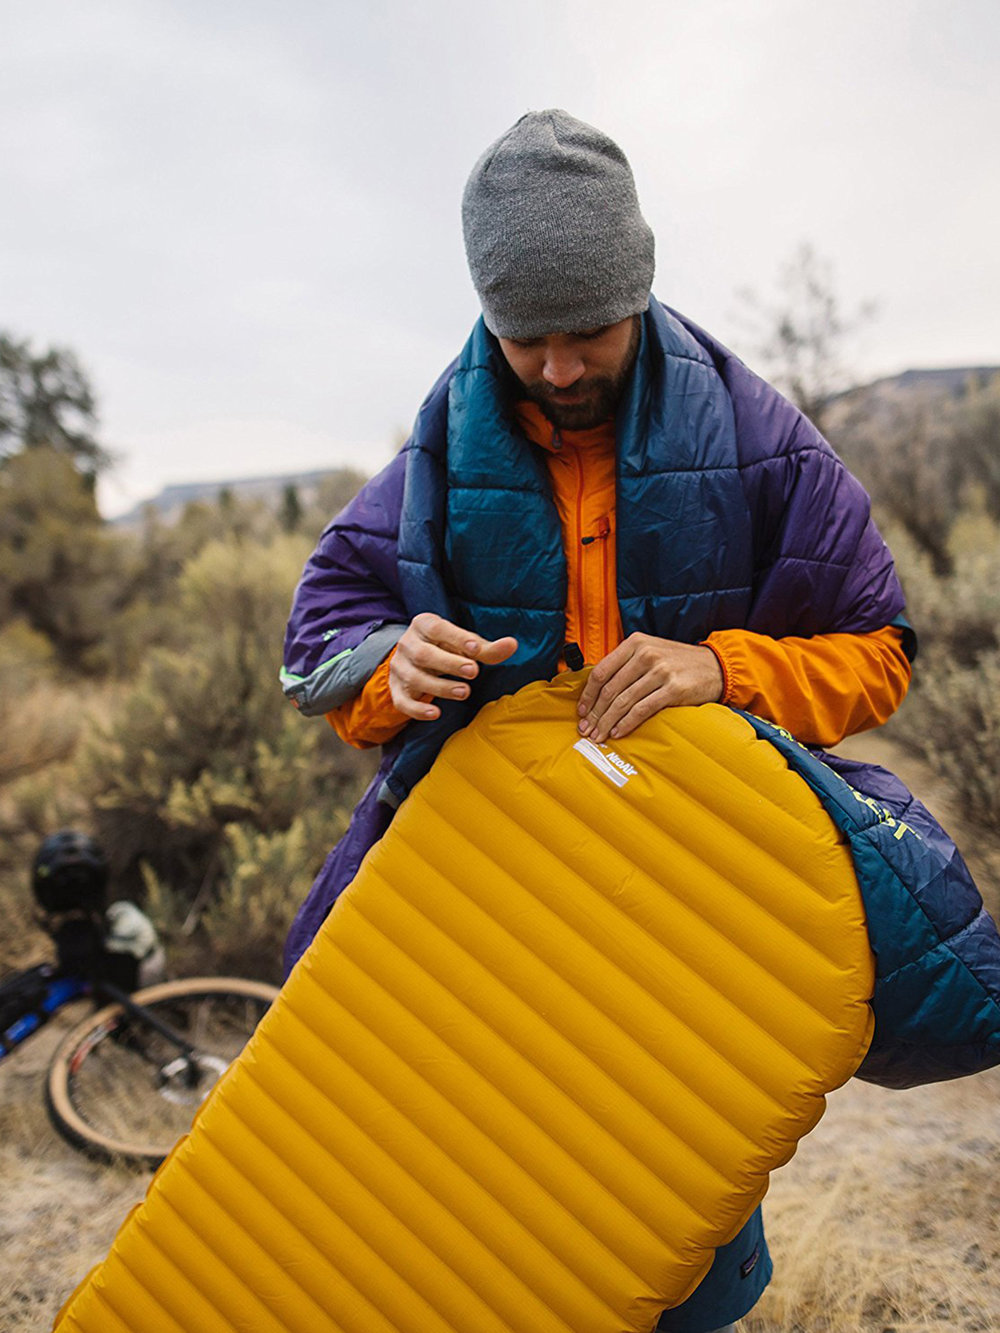 Thermarest Sleeping Pad - $169.95